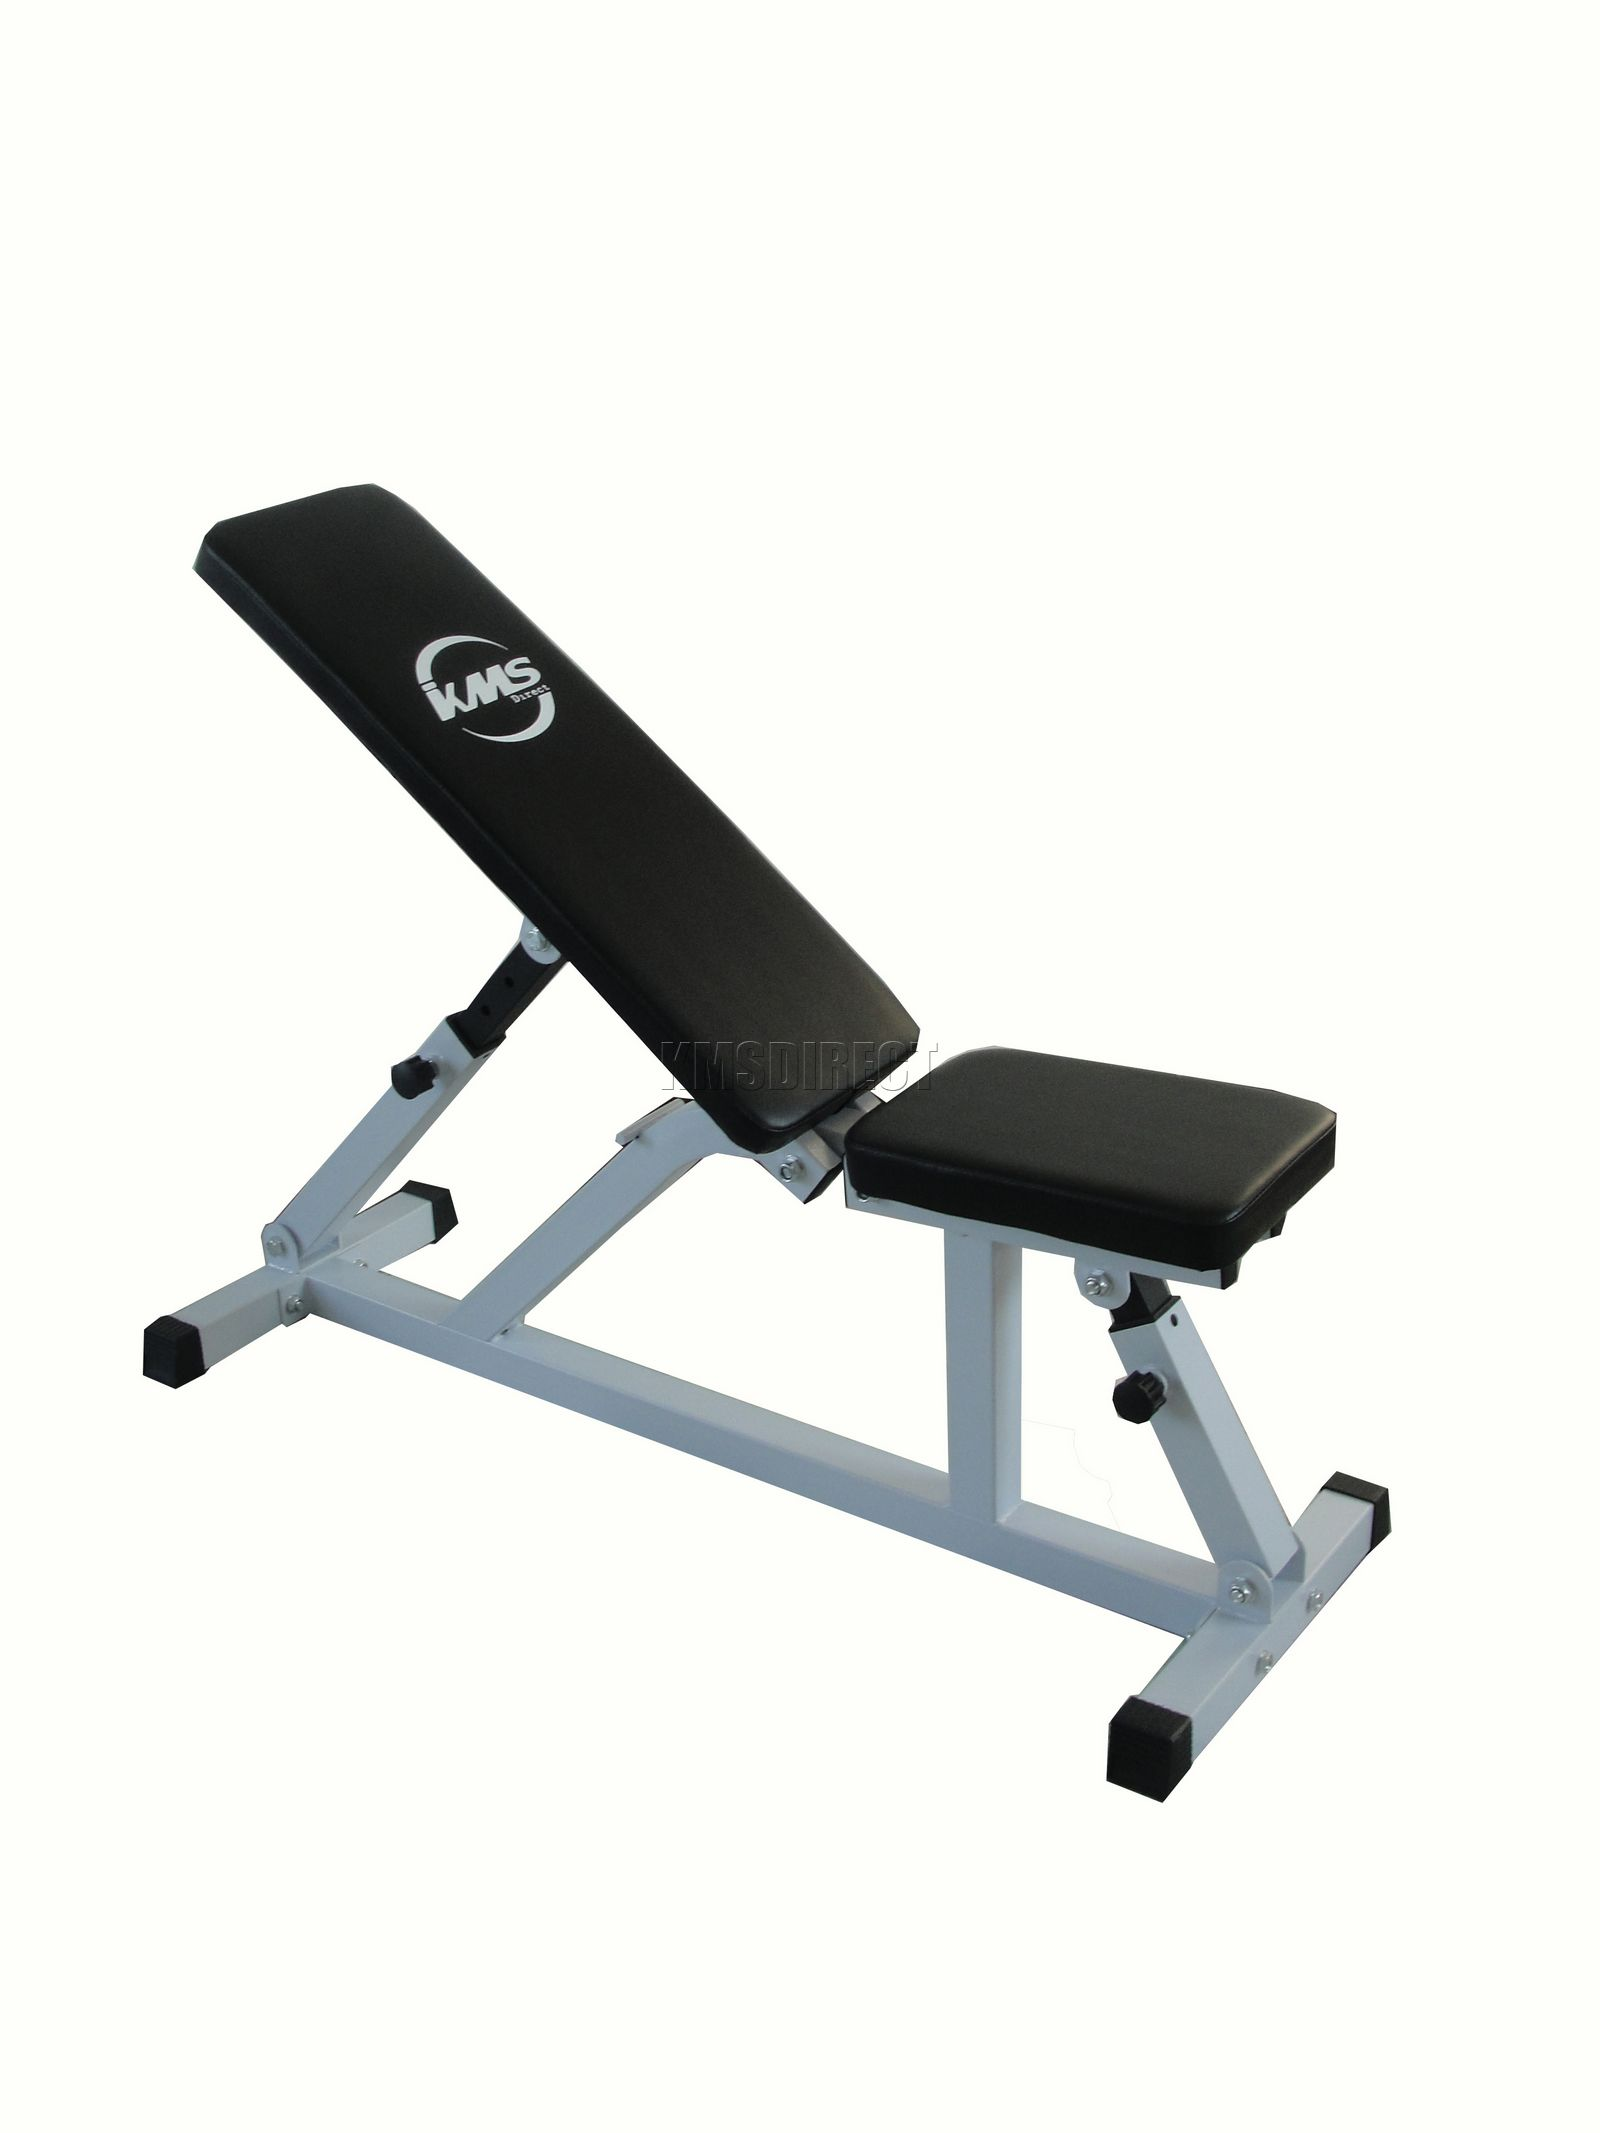 Heavy duty positions adjustable flat incline gym utility Bench weights